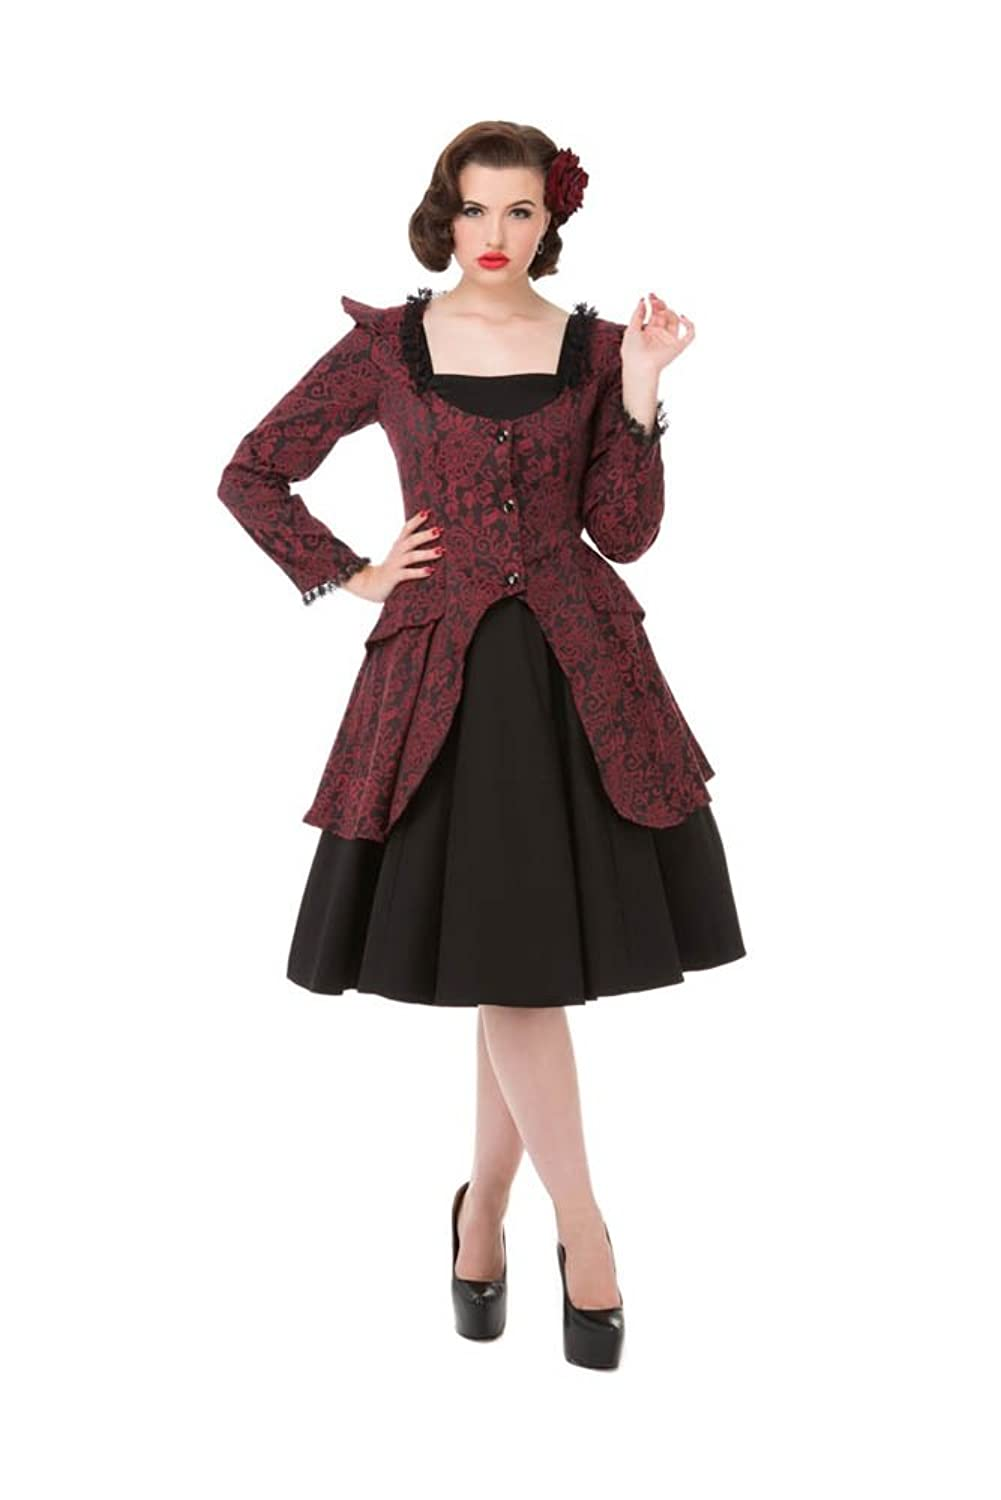 Steampunk Plus Size Clothing Amp Costumes